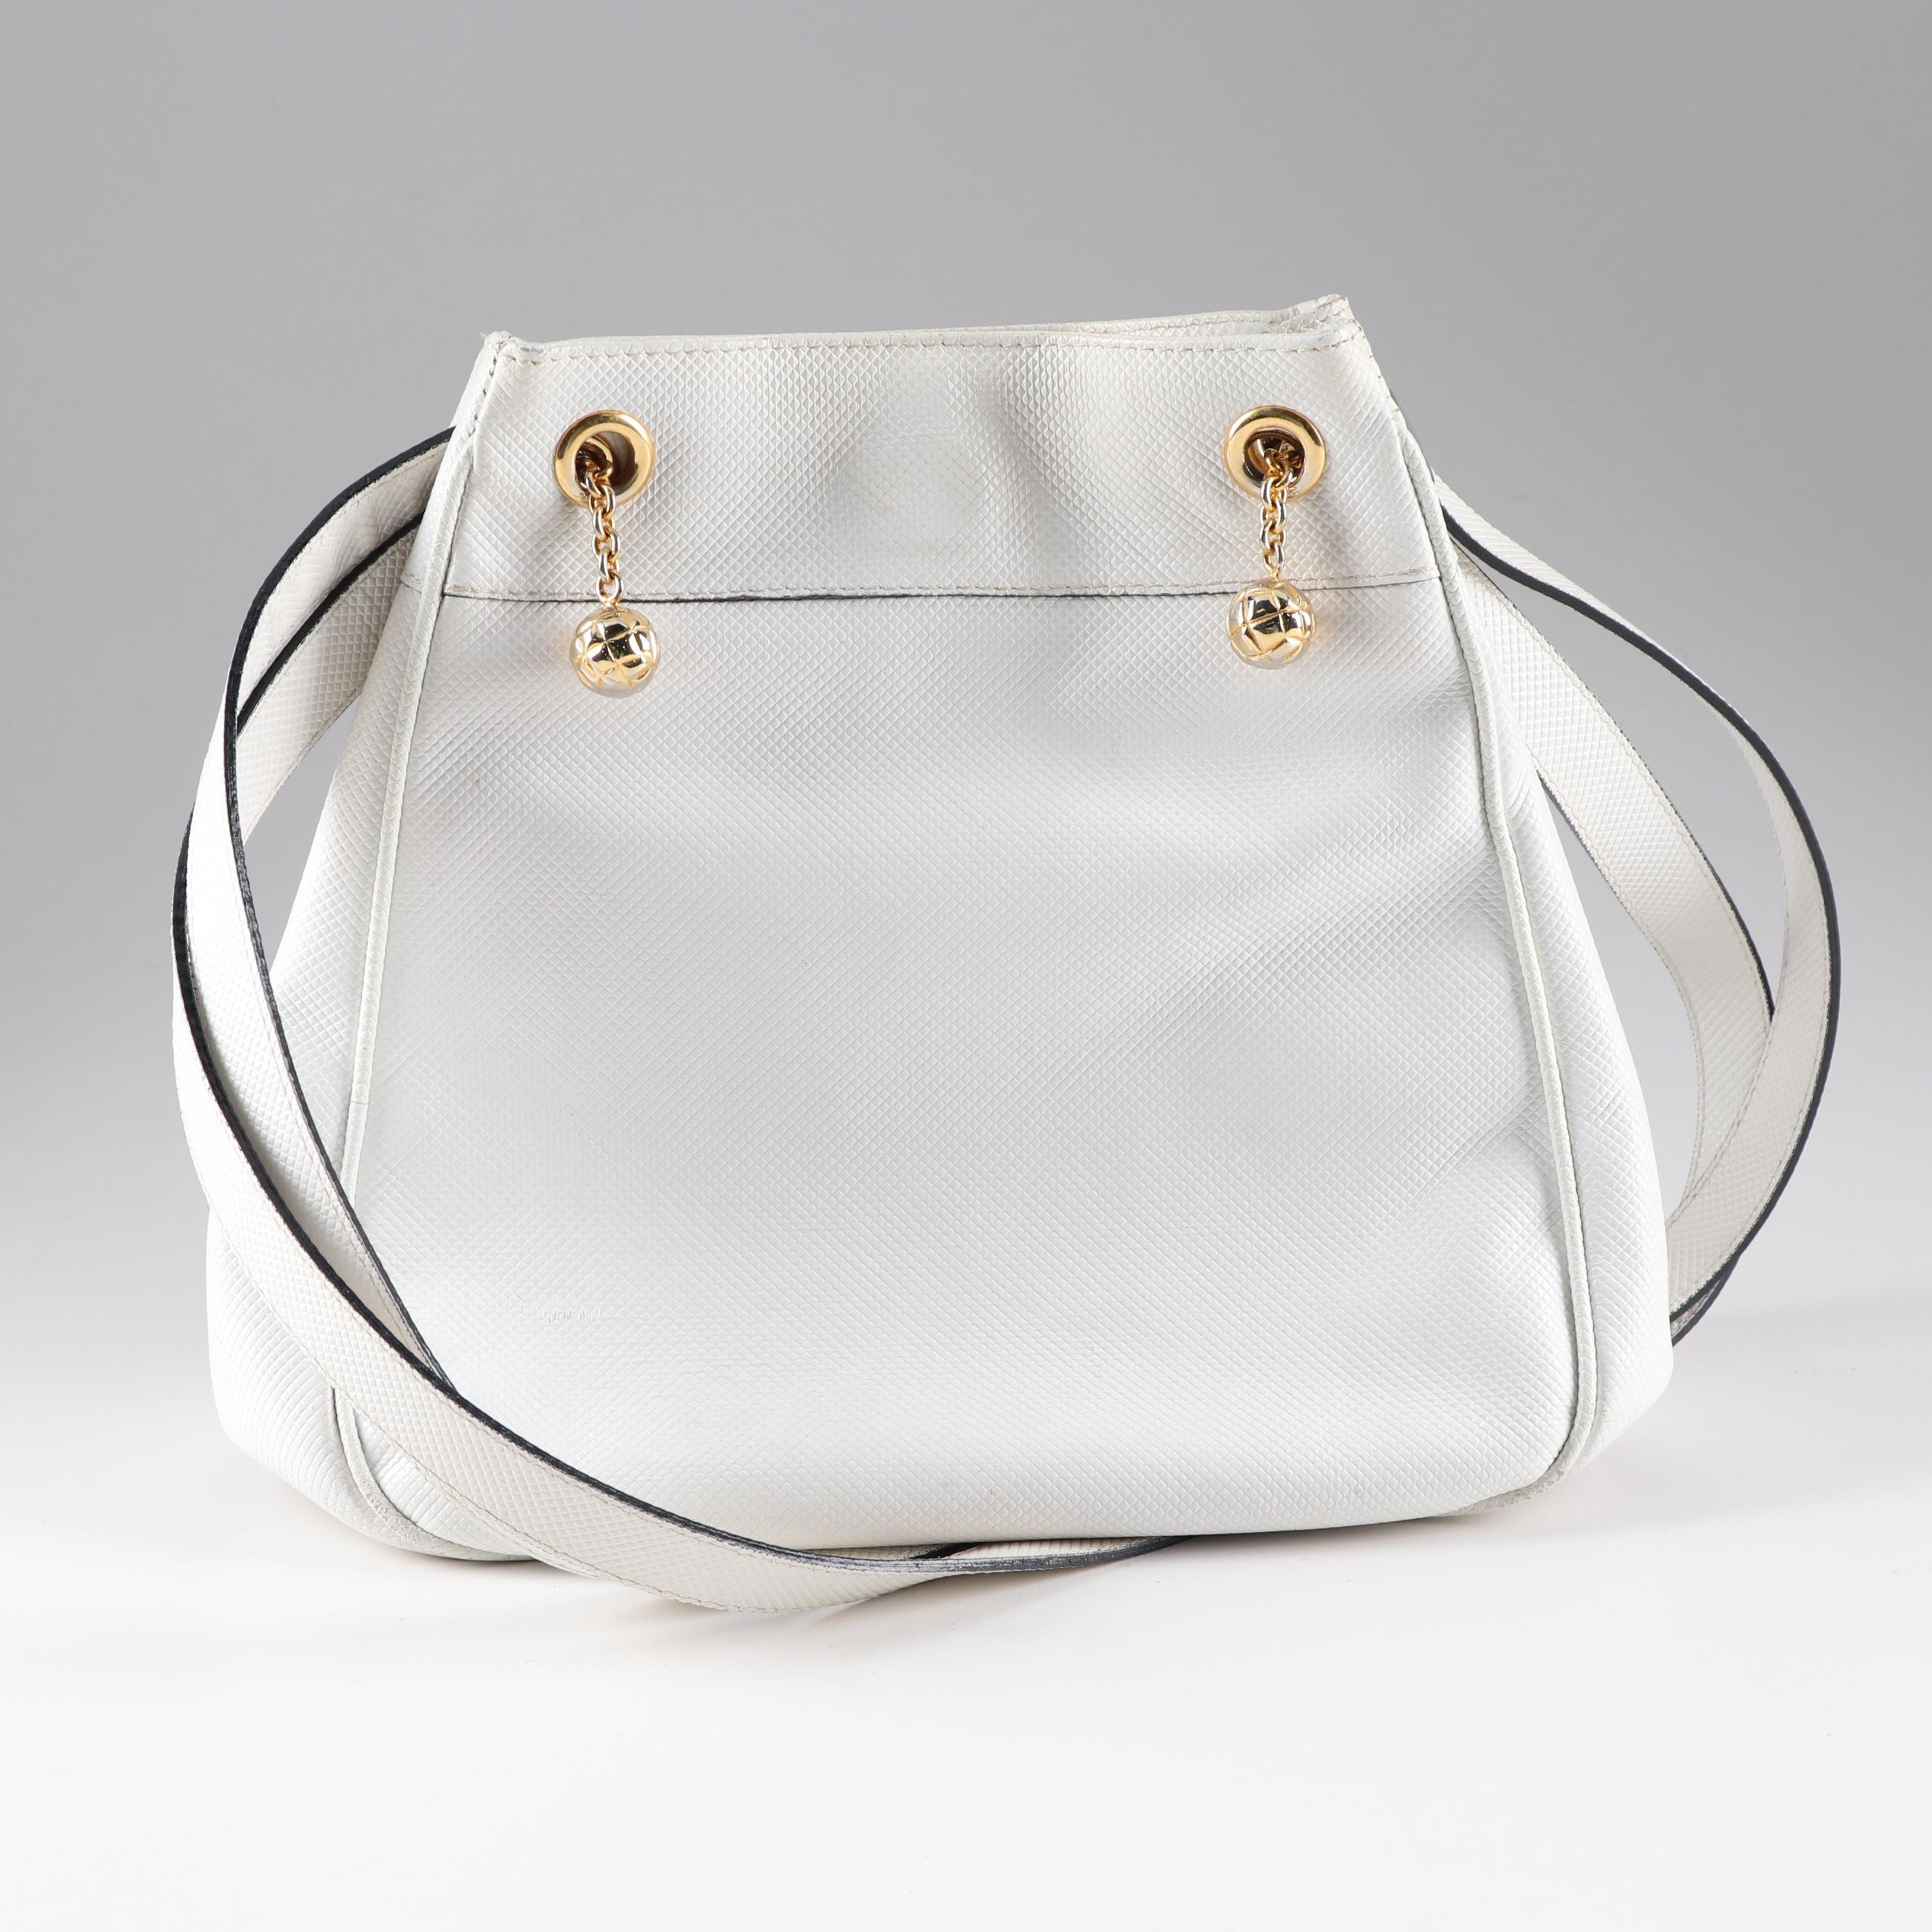 Bottega Veneta Embossed White Leather Shoulder Bag, Made in Italy